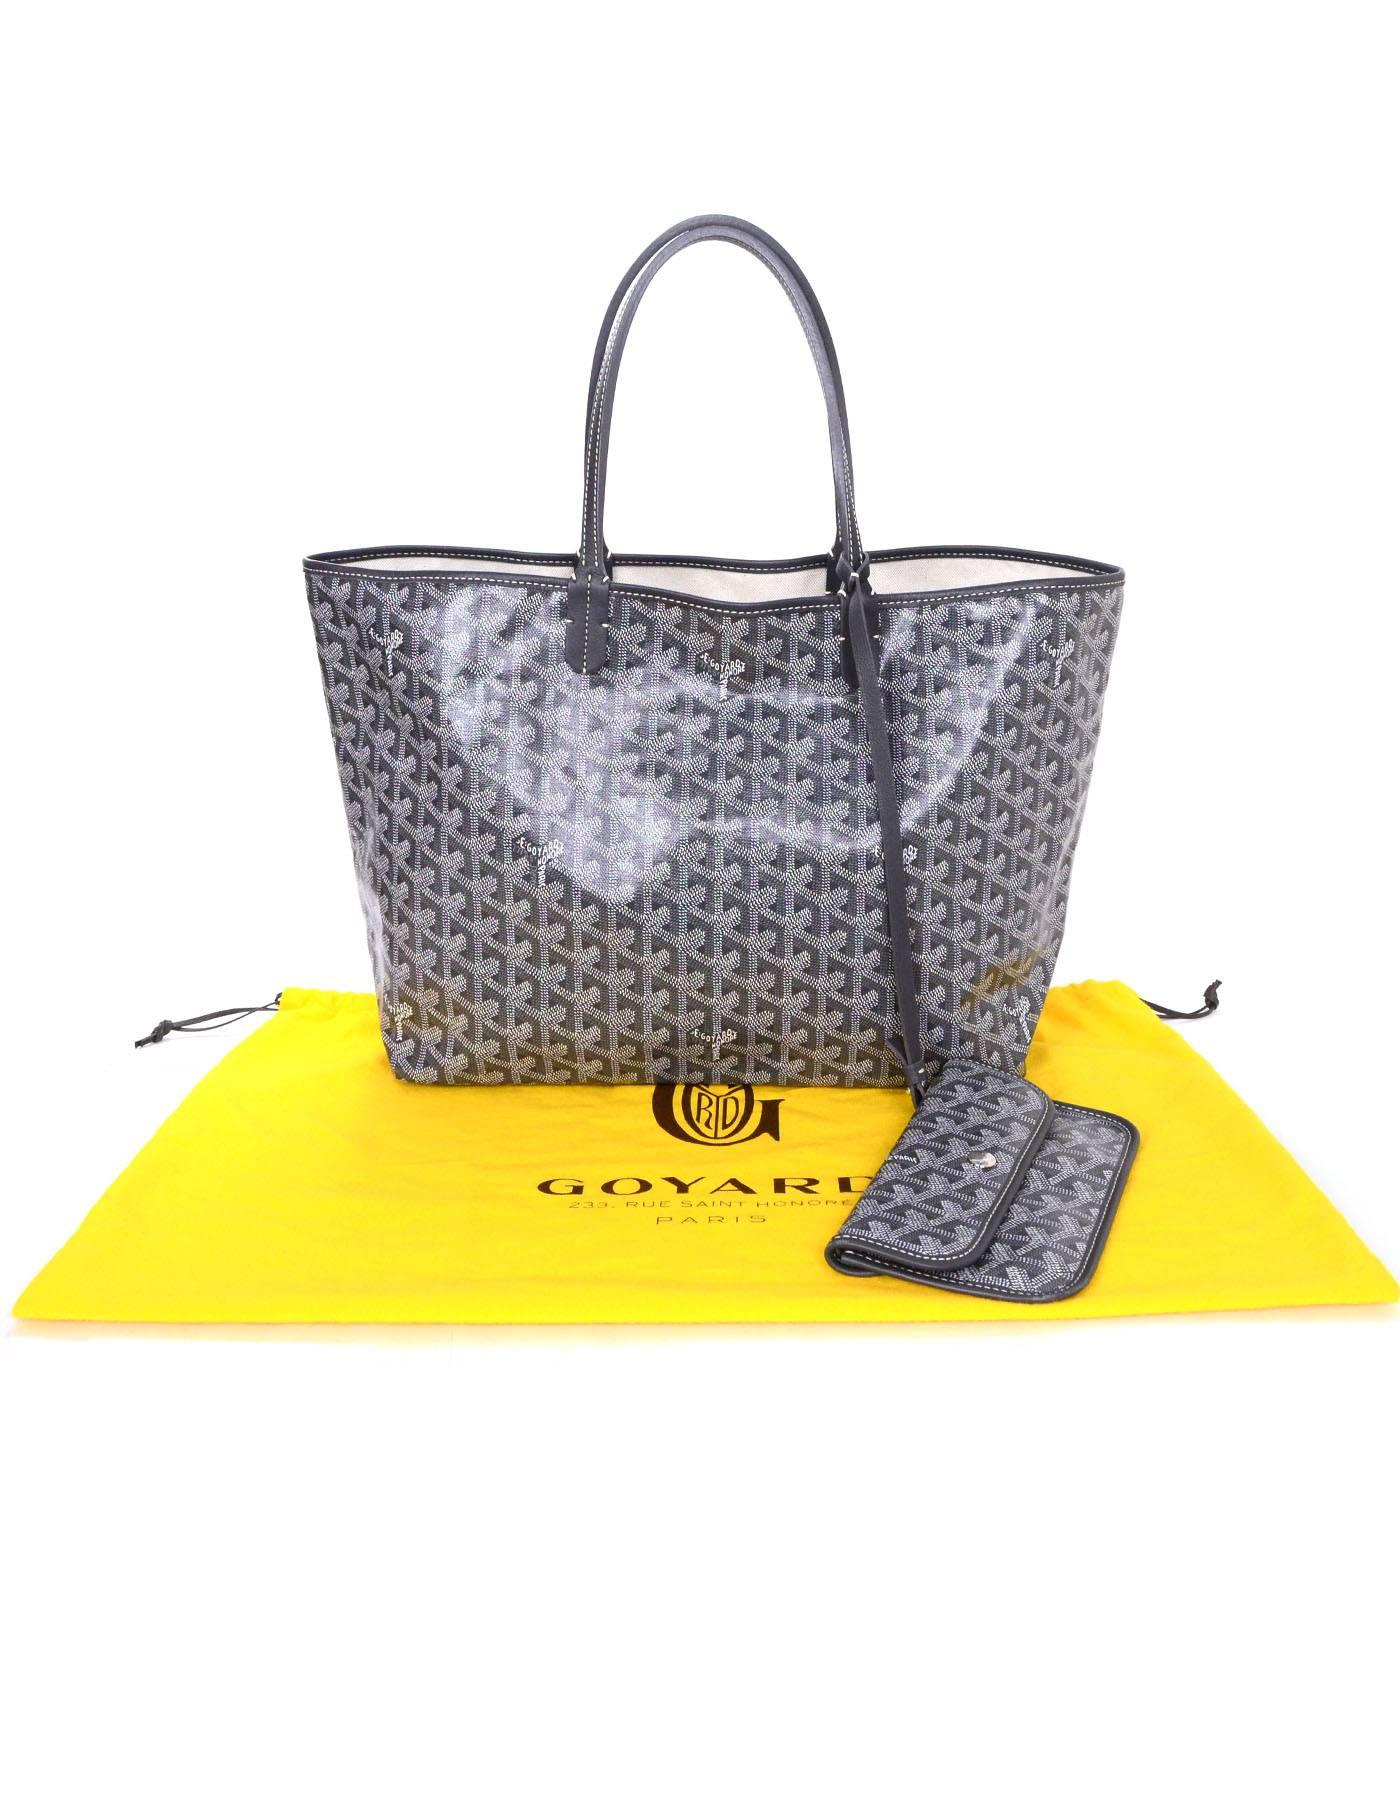 b179b069af589 Goyard Grey Chevron St. Louis PM Tote With Pouchette For Sale at 1stdibs